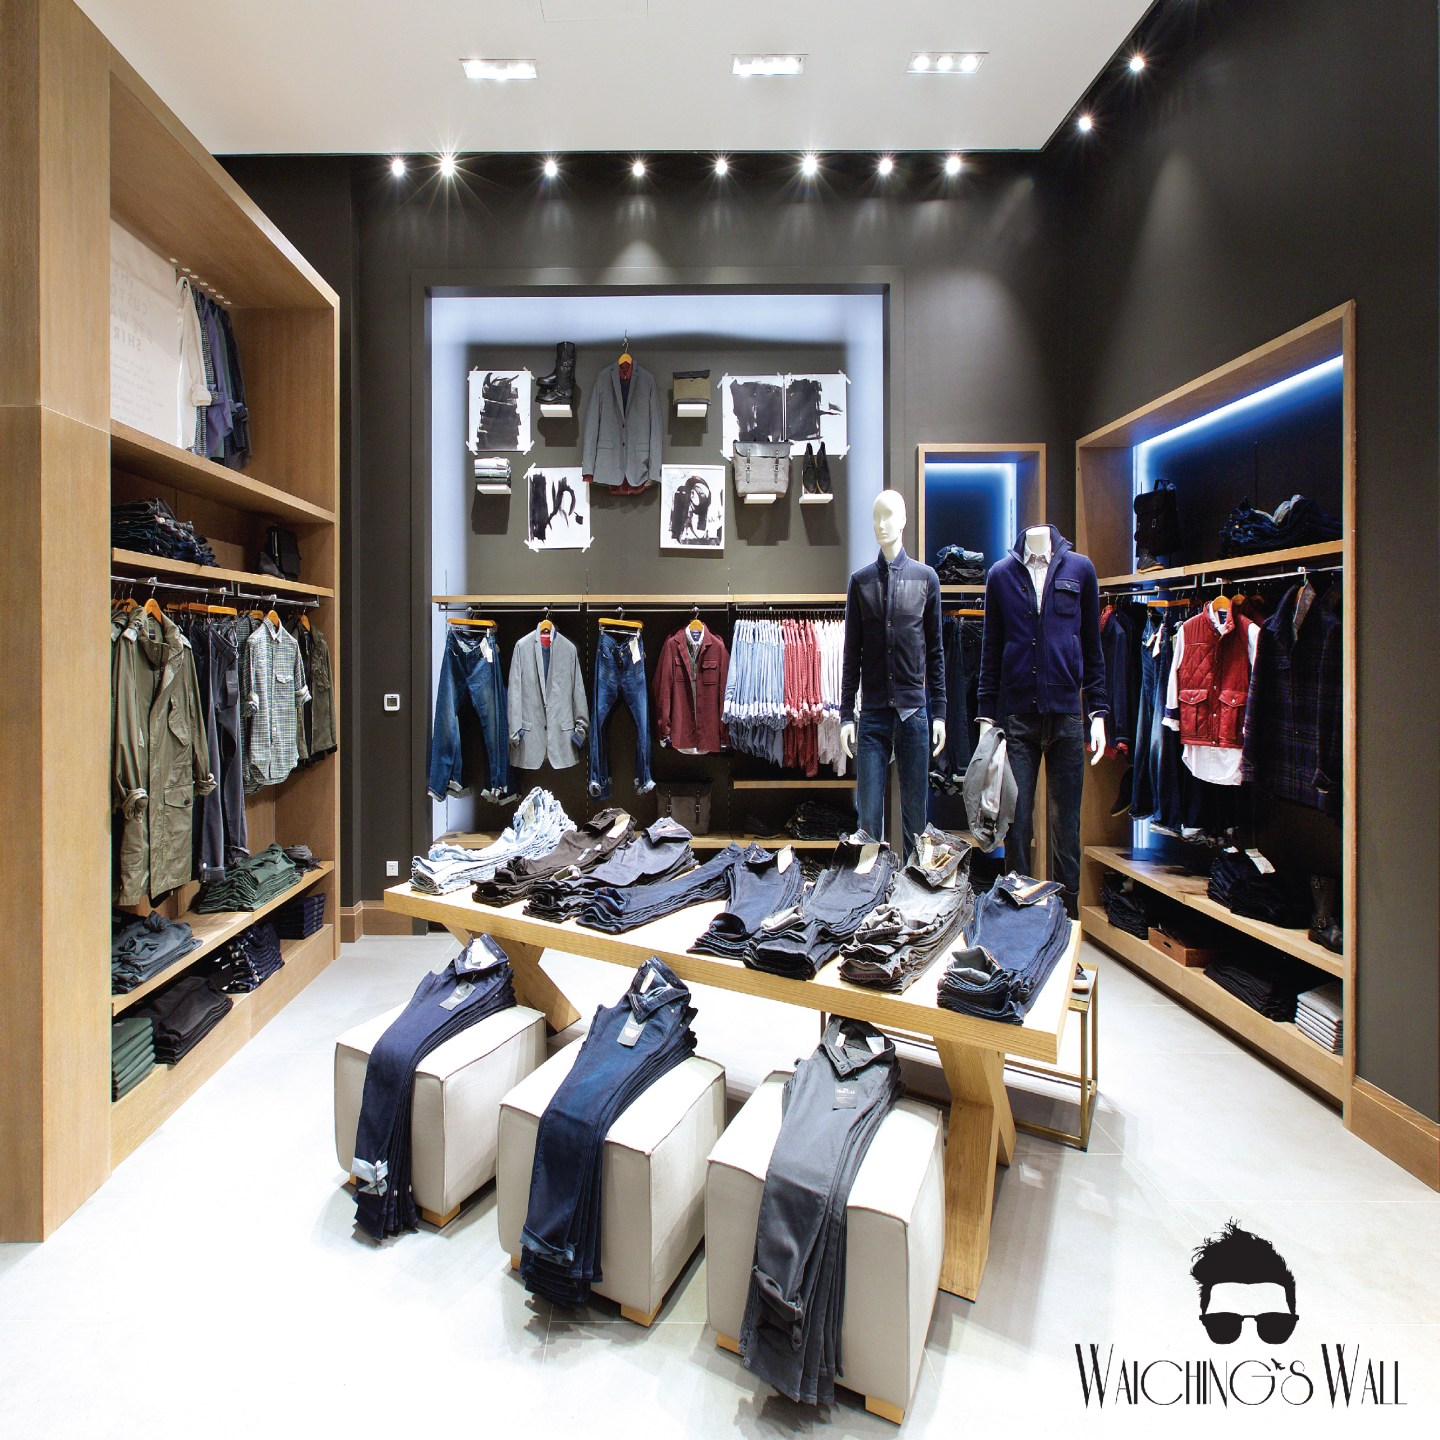 Banana Republic X Waichings Wall-08